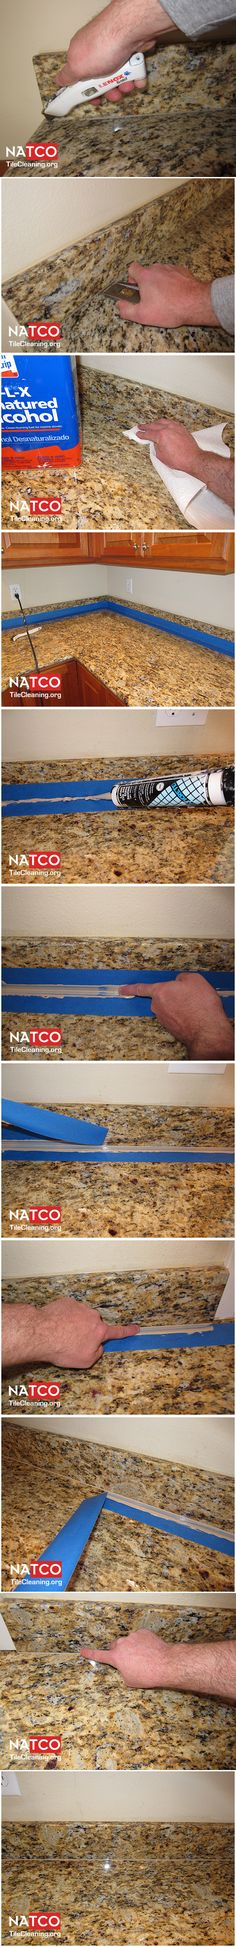 How to clean up old caulk and apply new caulk to granite countertop